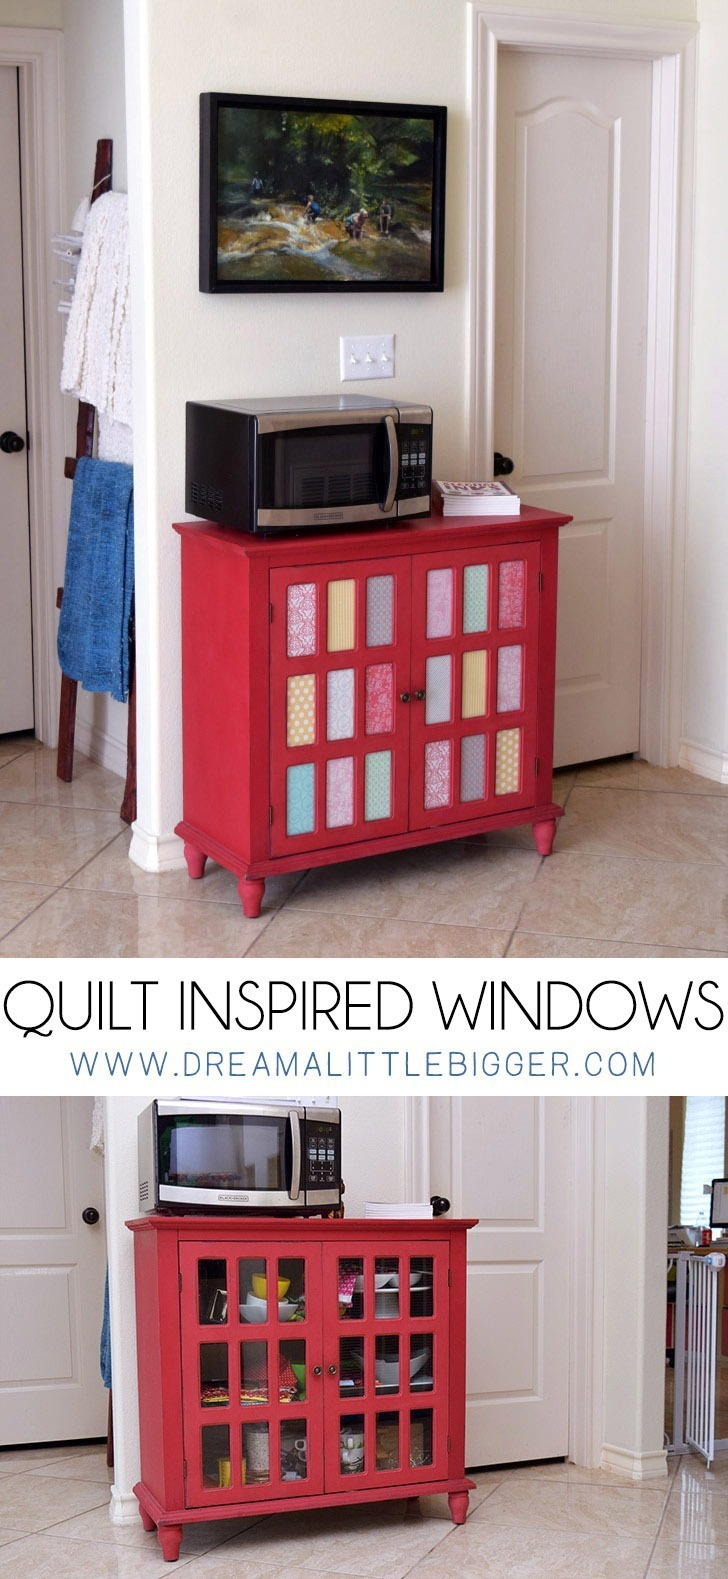 Clear glass doesn't coordinate with messy shelves! These quilt inspired window panes update my cabinet and hide away my mess.